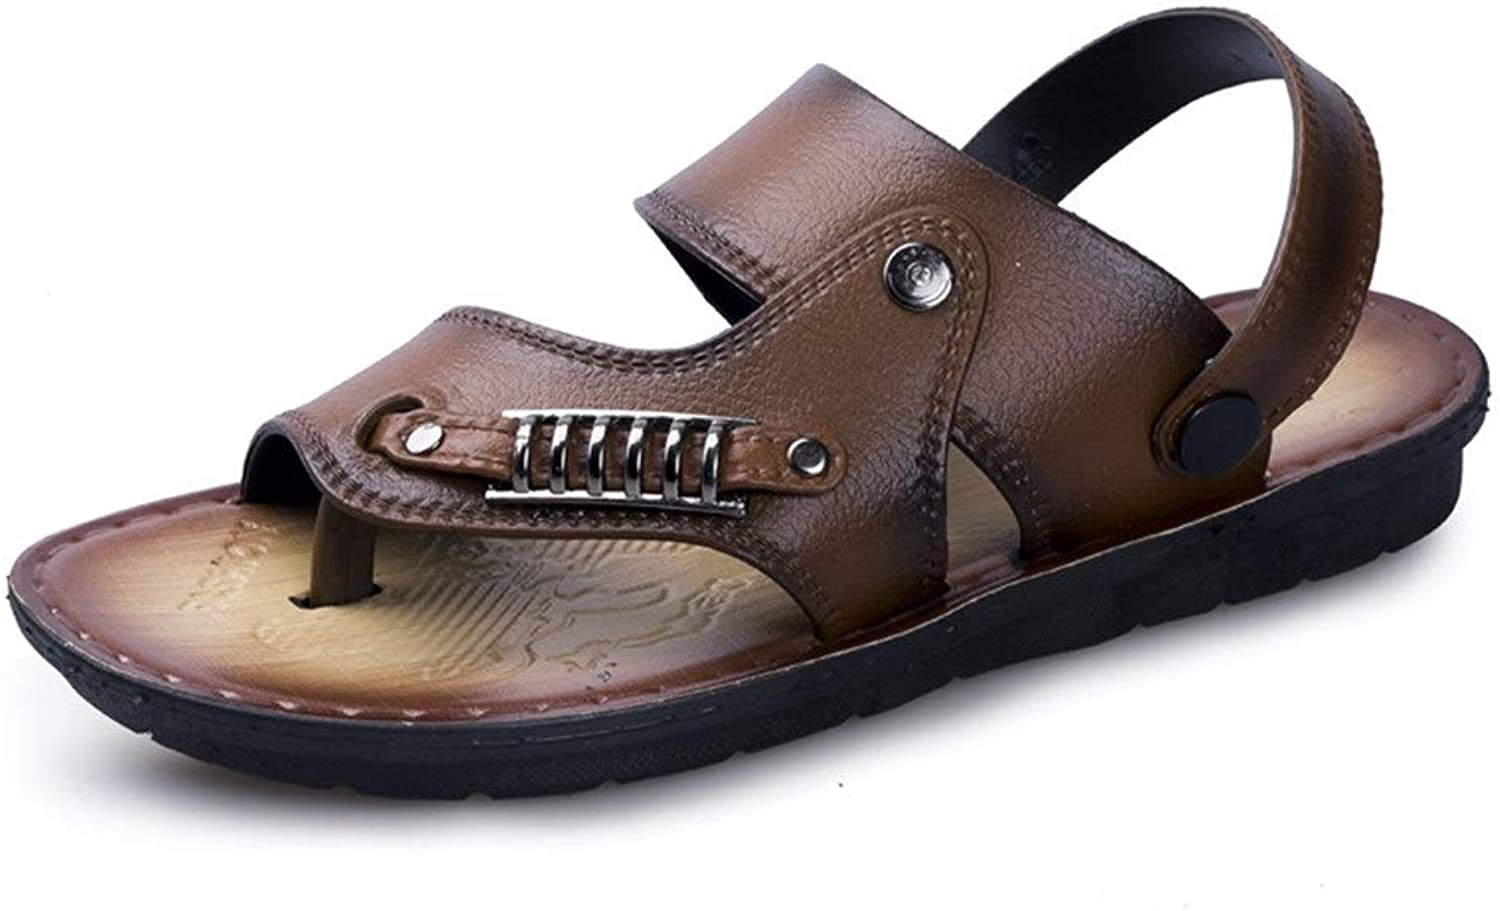 Breathable Anti-Slip Flat Waterproof Quick-Drying Round Toe Buckle Summer Beach Slippers Compatible Men PU Leather Outdoor Casual Sandals (color   Brown, Size   9 UK)